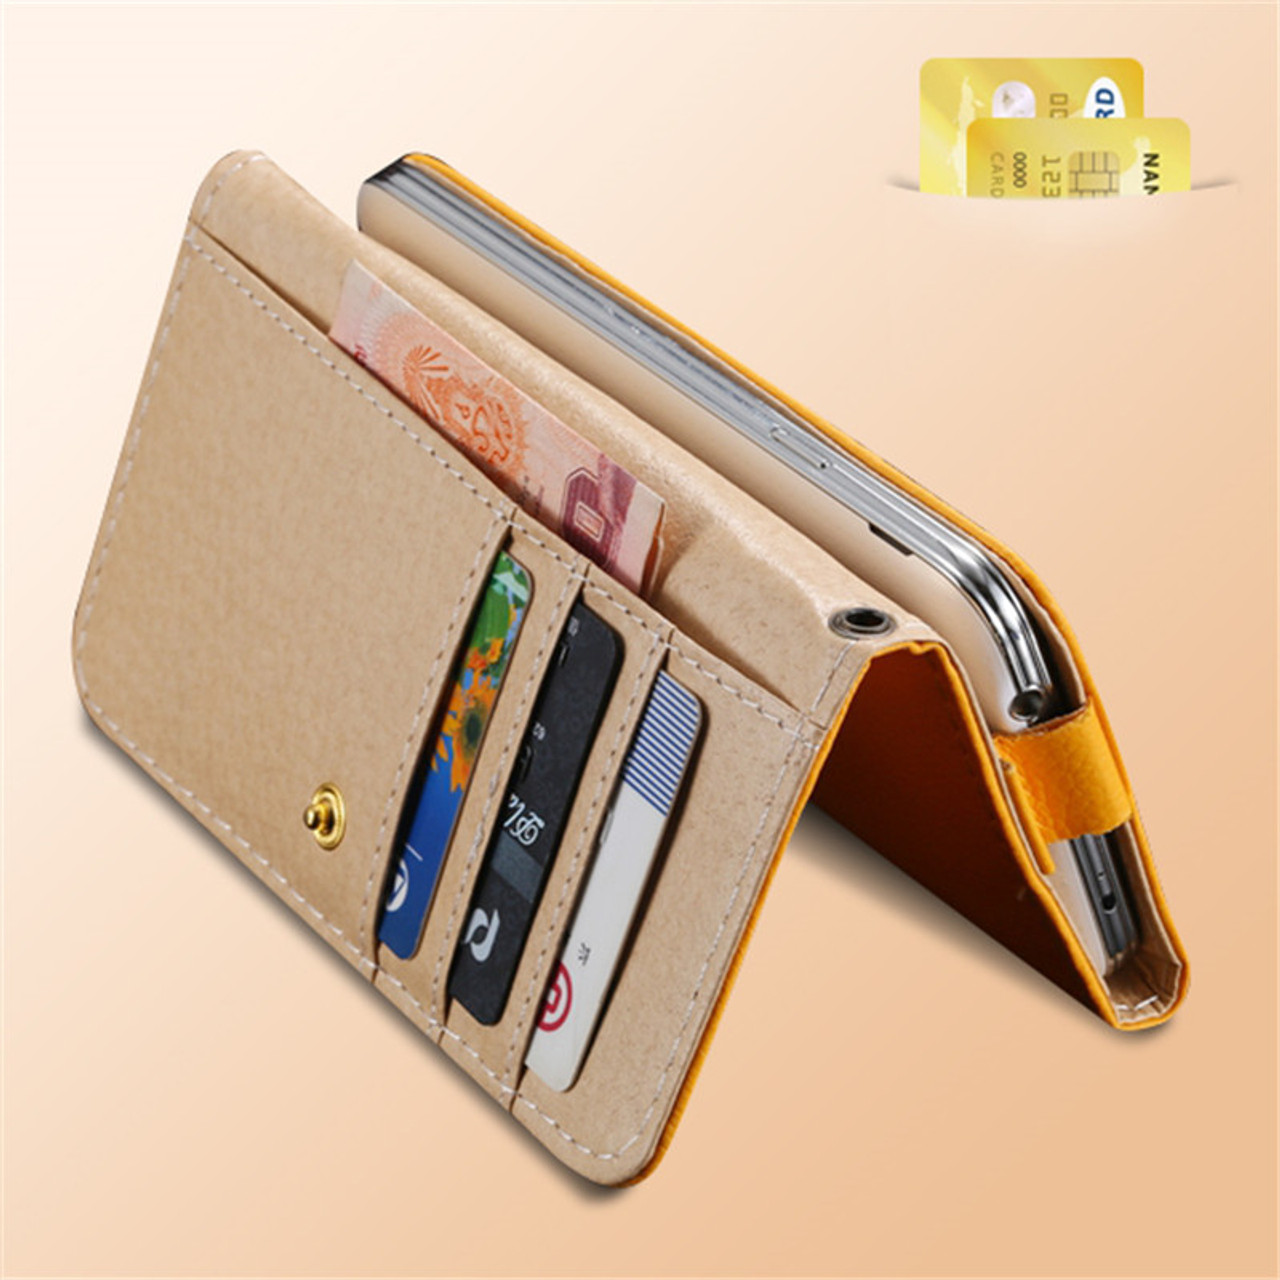 KISSCASE Universal Women Men Wallet Case Cover For iPhone 7 6 6S Plus 5S SE  For Samsung Galaxy S6 Edge S5 S4 Leather Pouch Bags - OnshopDeals.Com 8e118f6f8c